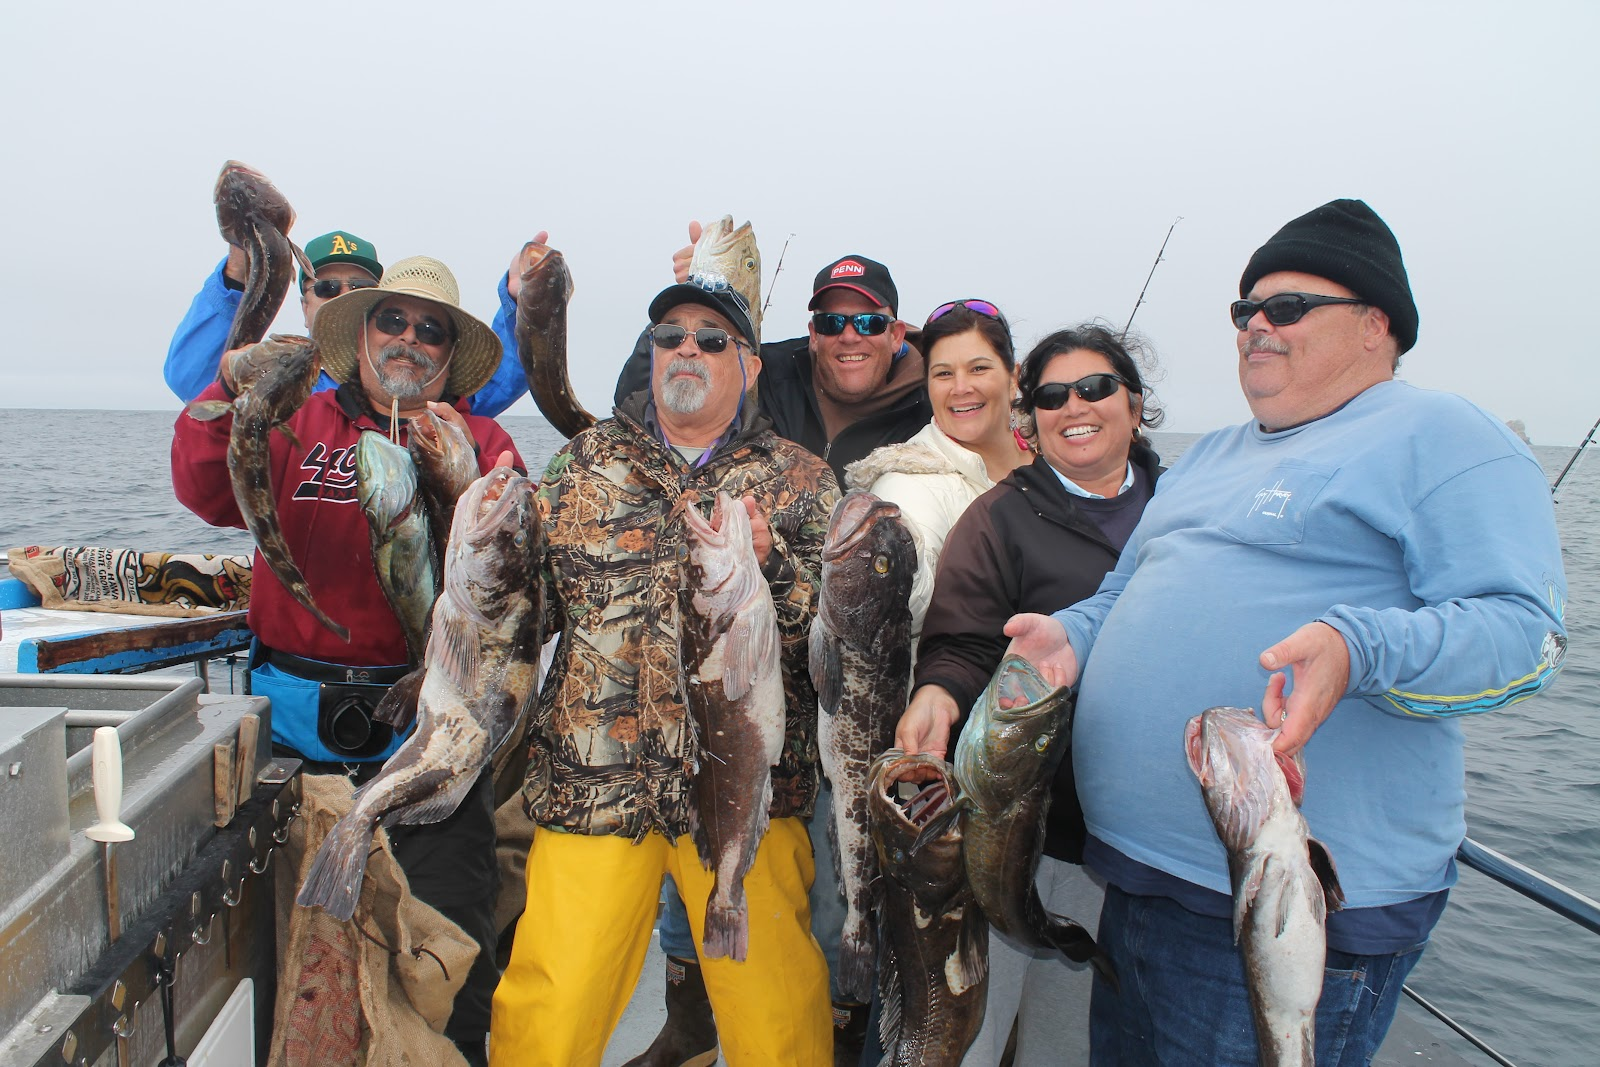 Dan 39 s journal fishing report from our trip to emeryville for Emeryville fishing report